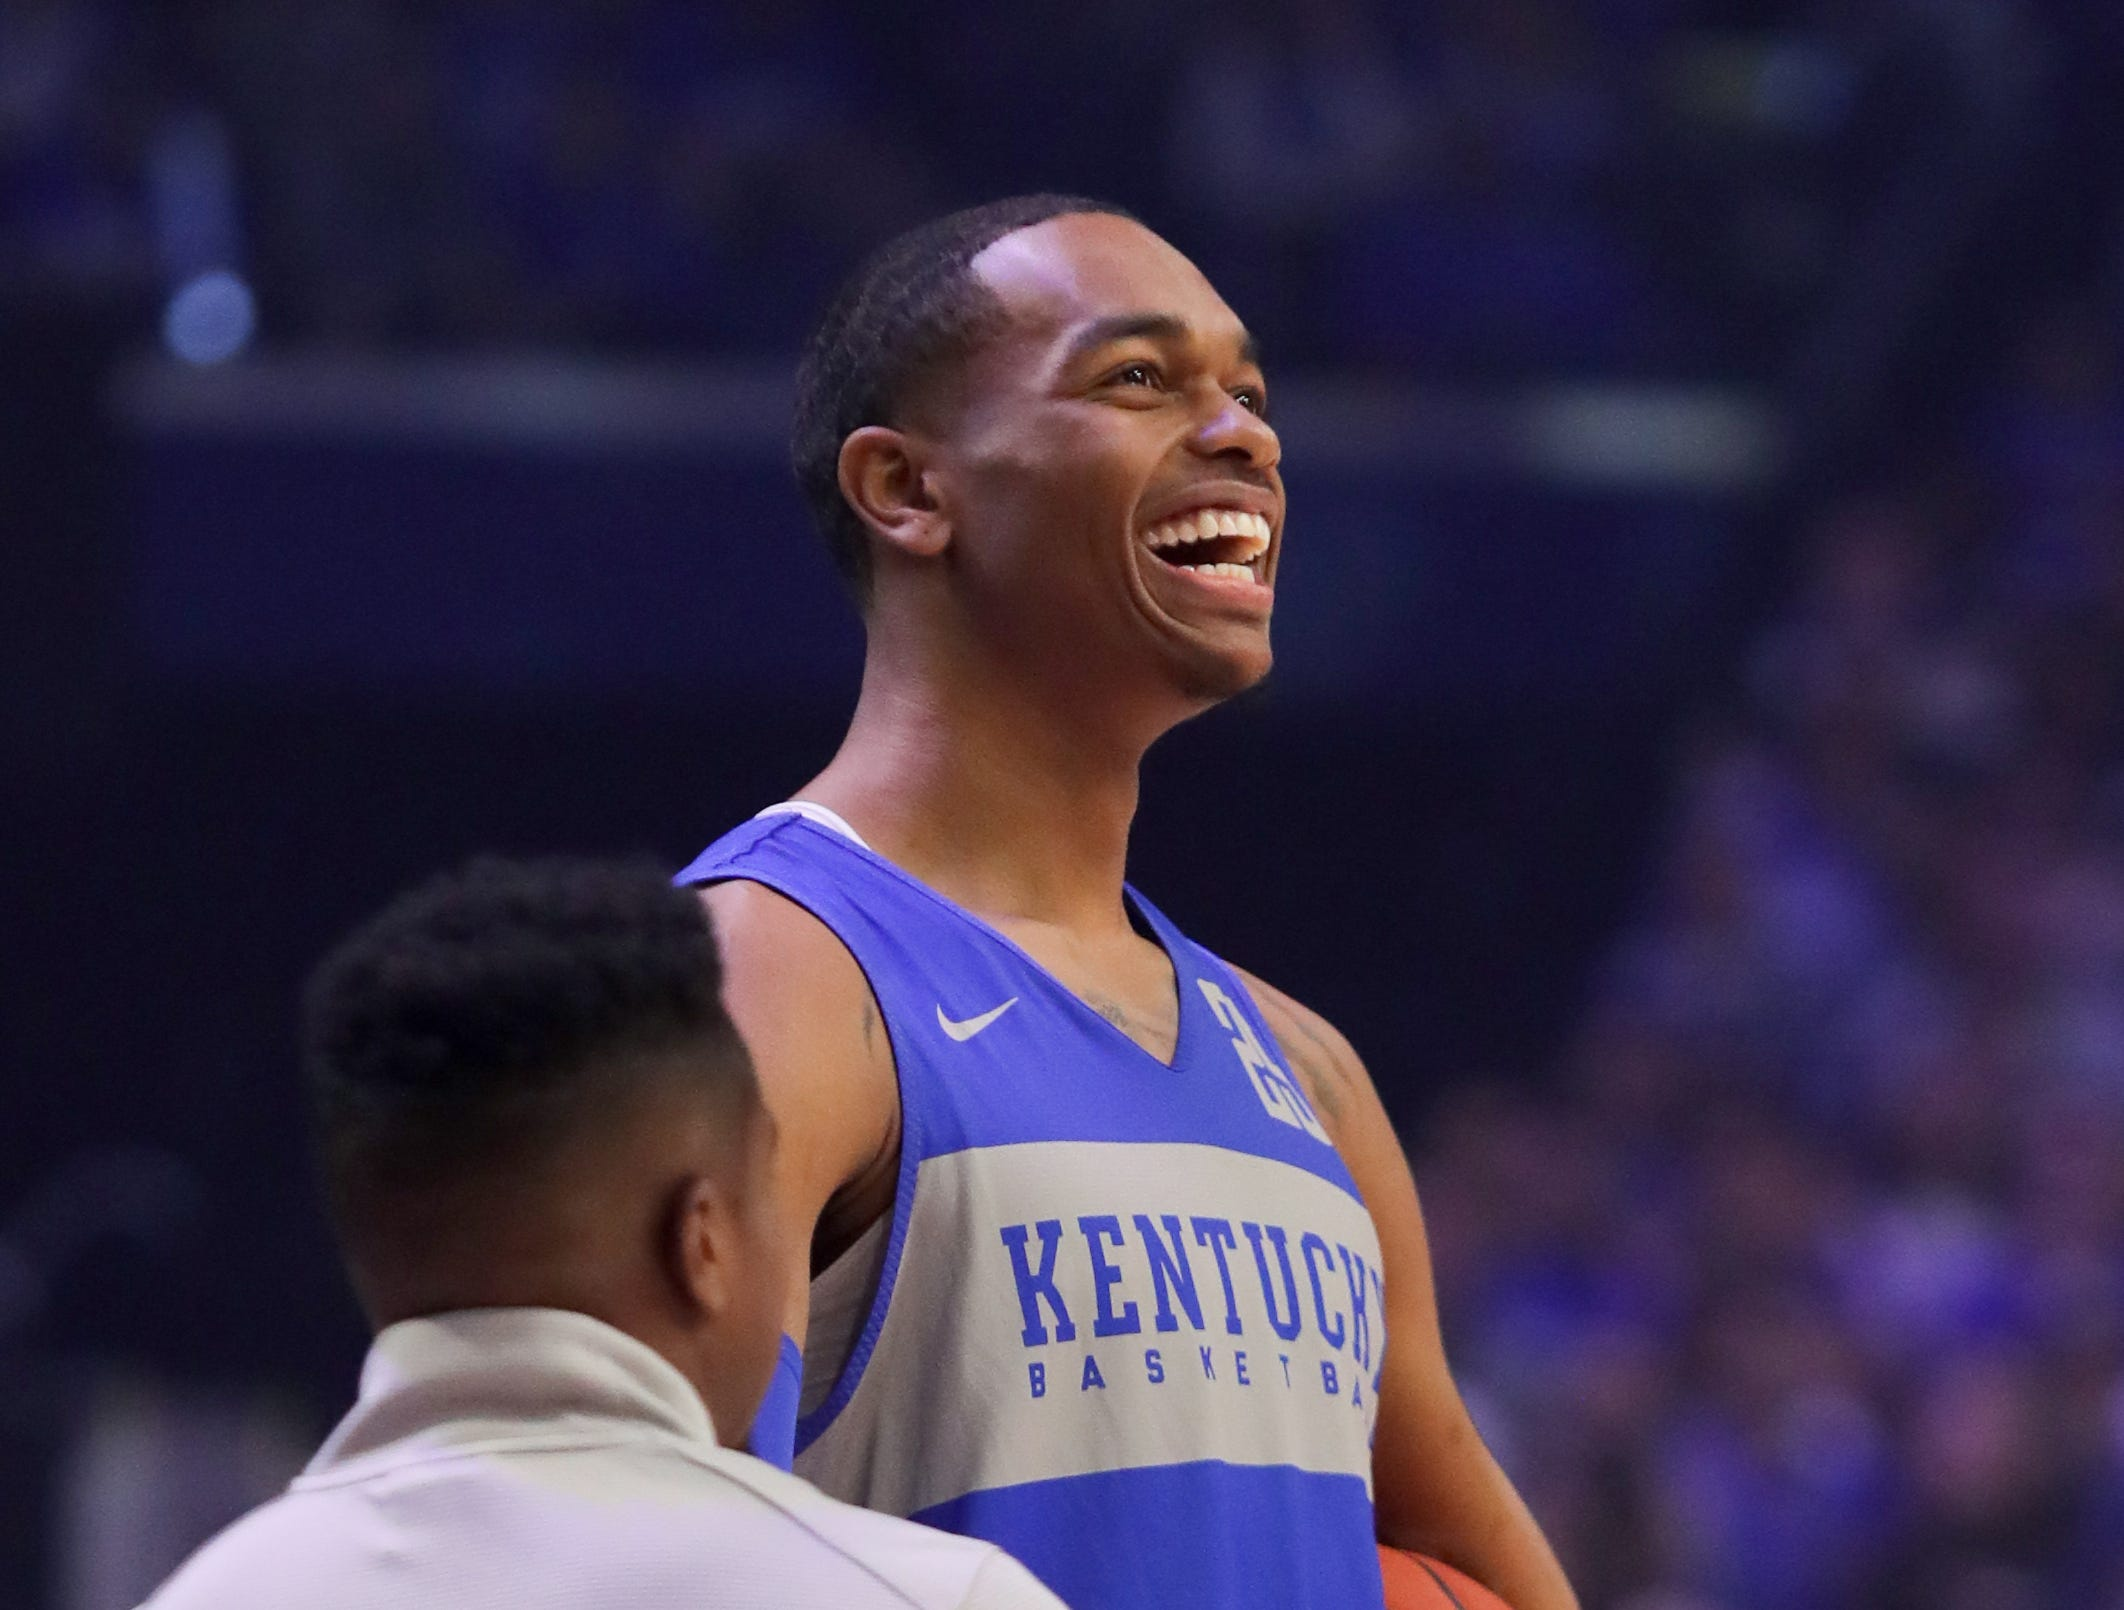 Kentucky PJ Washington was all smiles as we waited his turn during the dunk contest at Big Blue Madness in Lexington, Kentucky.